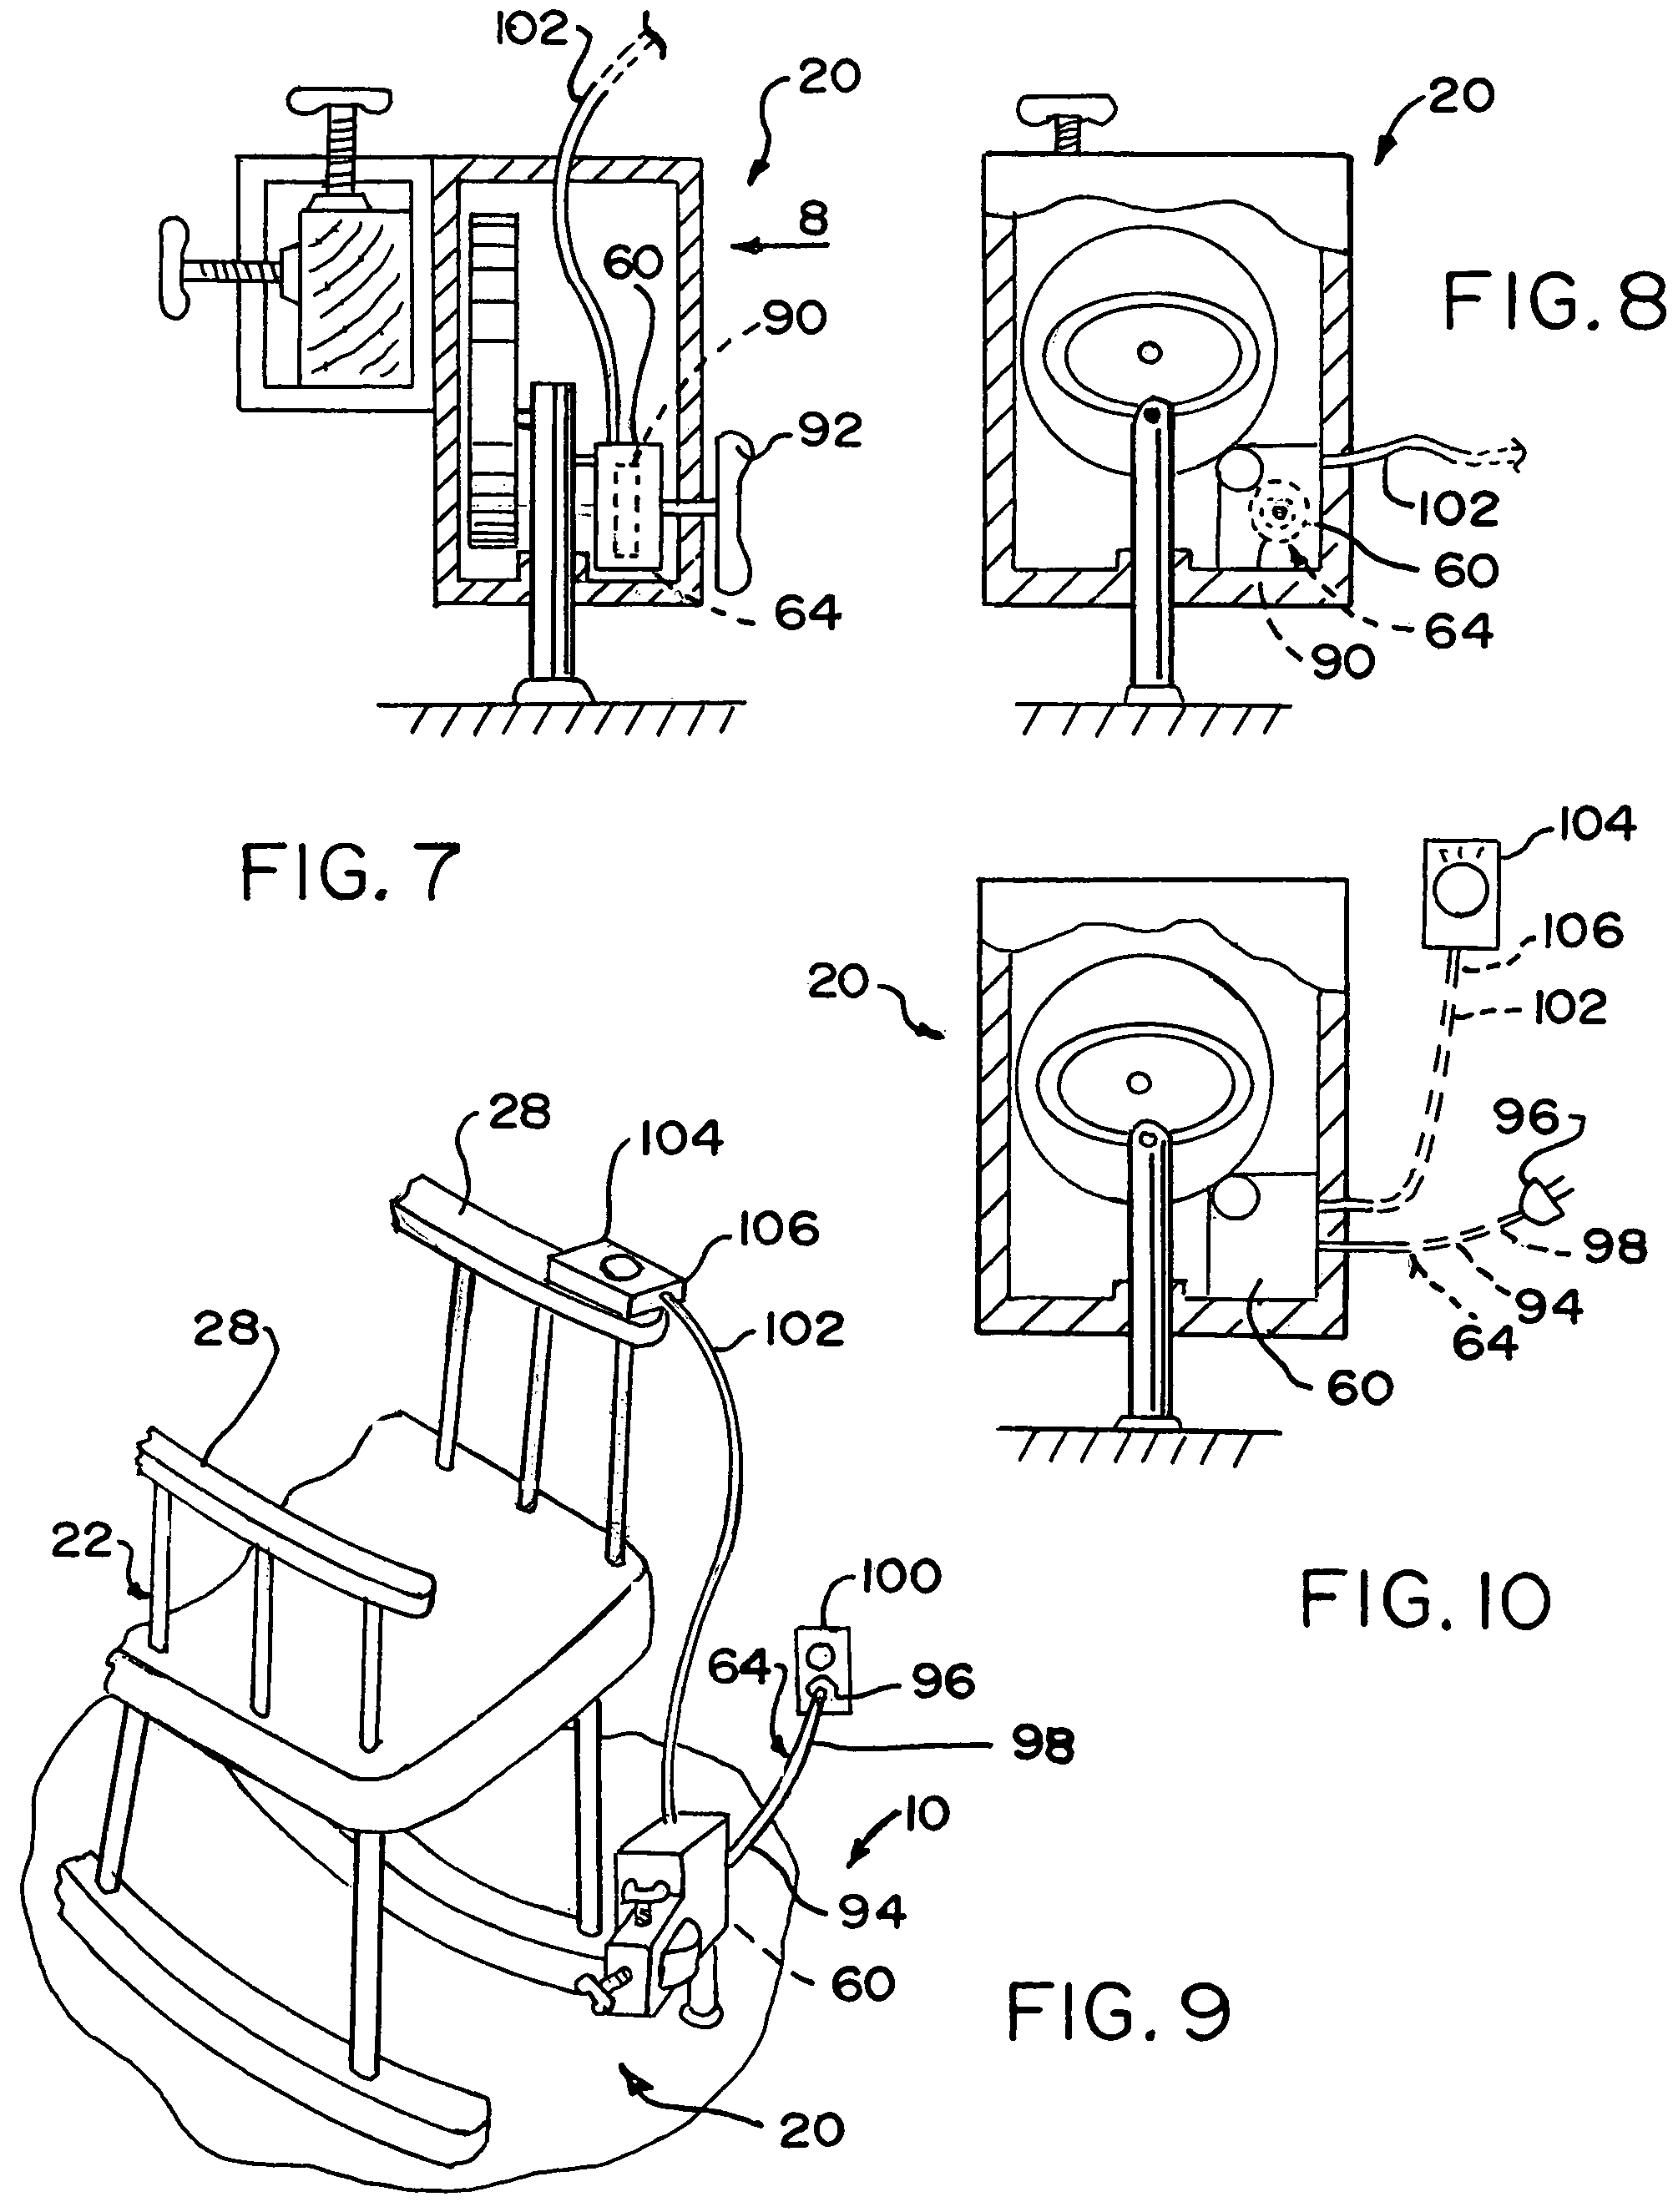 Patent US Device that automatically rocks a rocking a